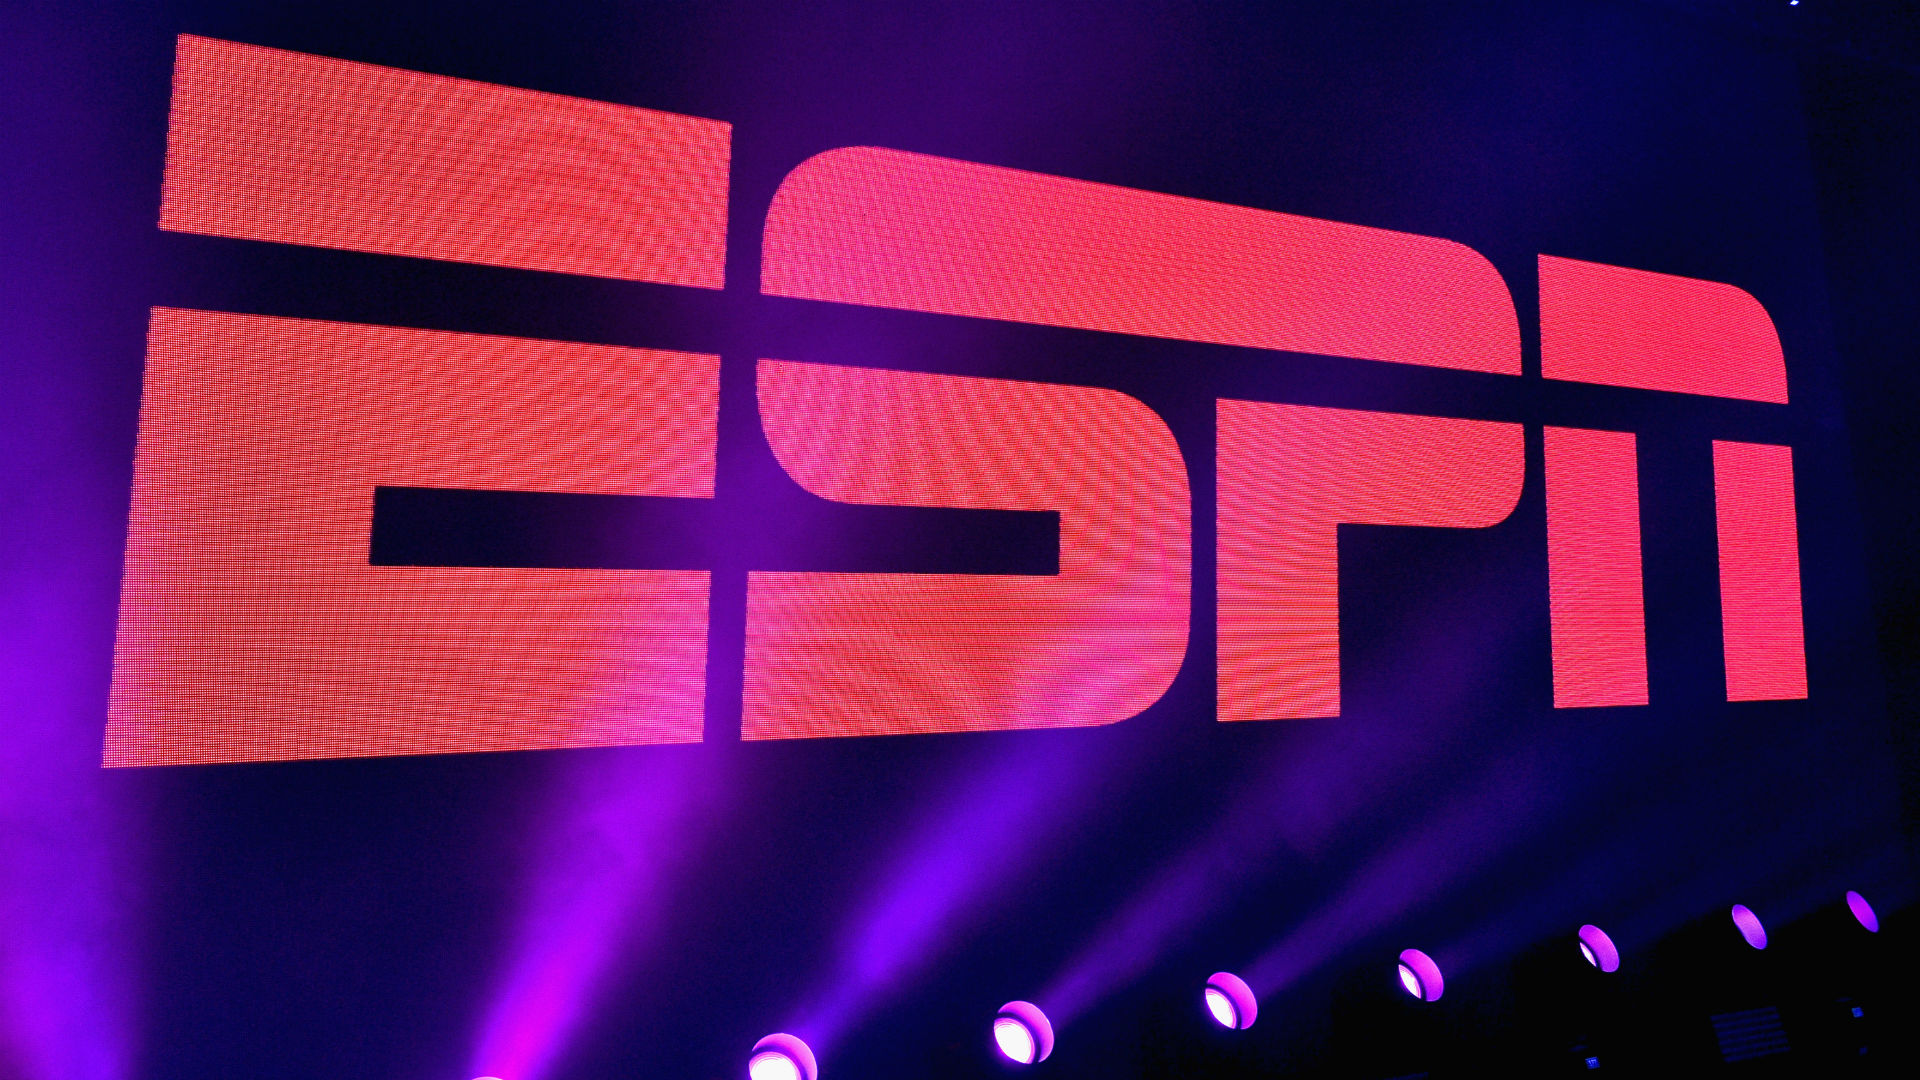 ESPN will reportedly undergo massive layoffs again